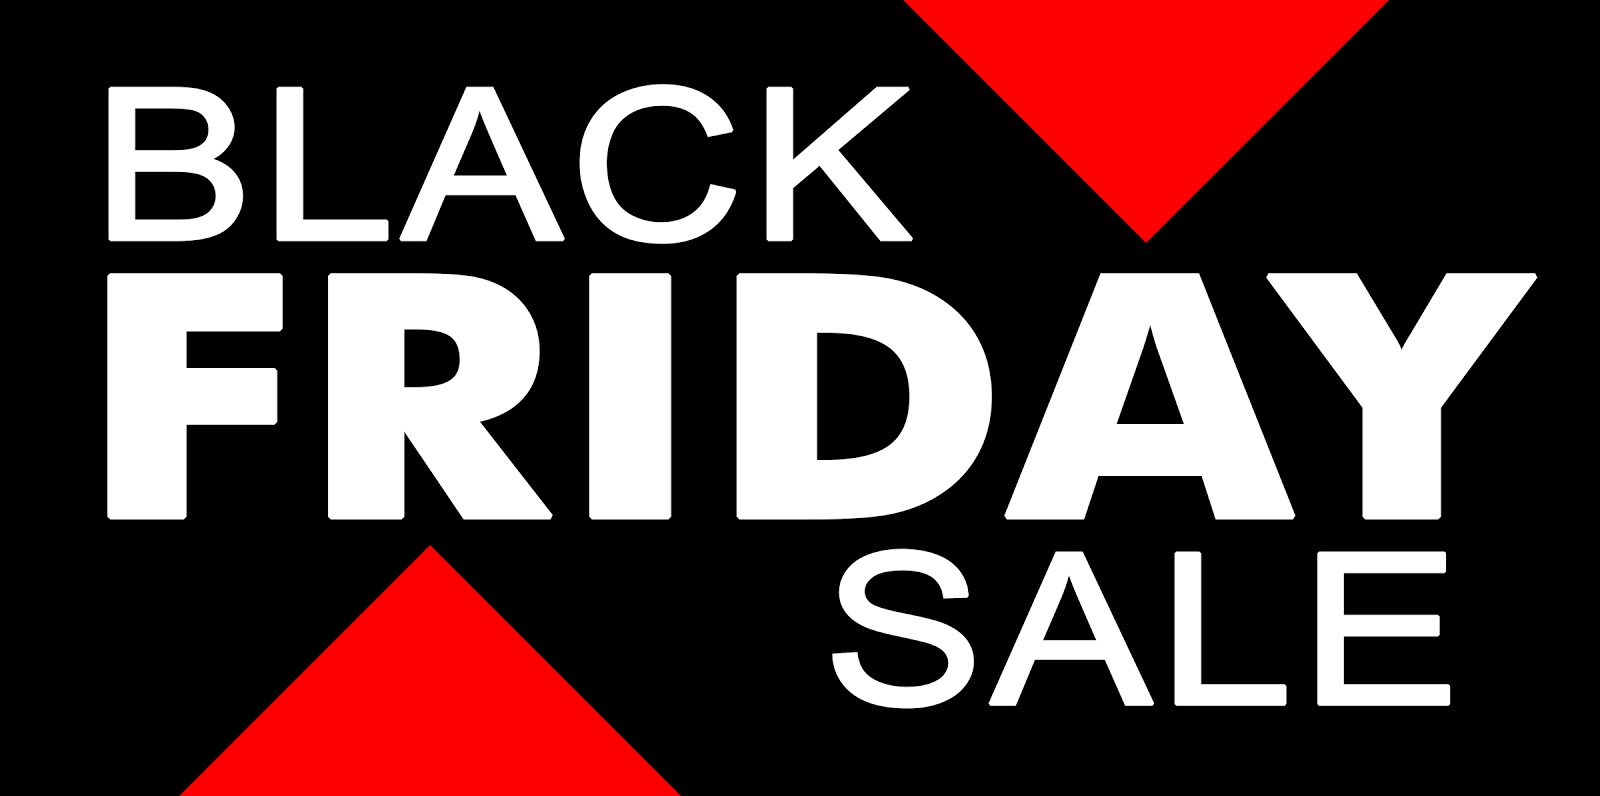 Friday Sale Banners Black Friday Banner Templates